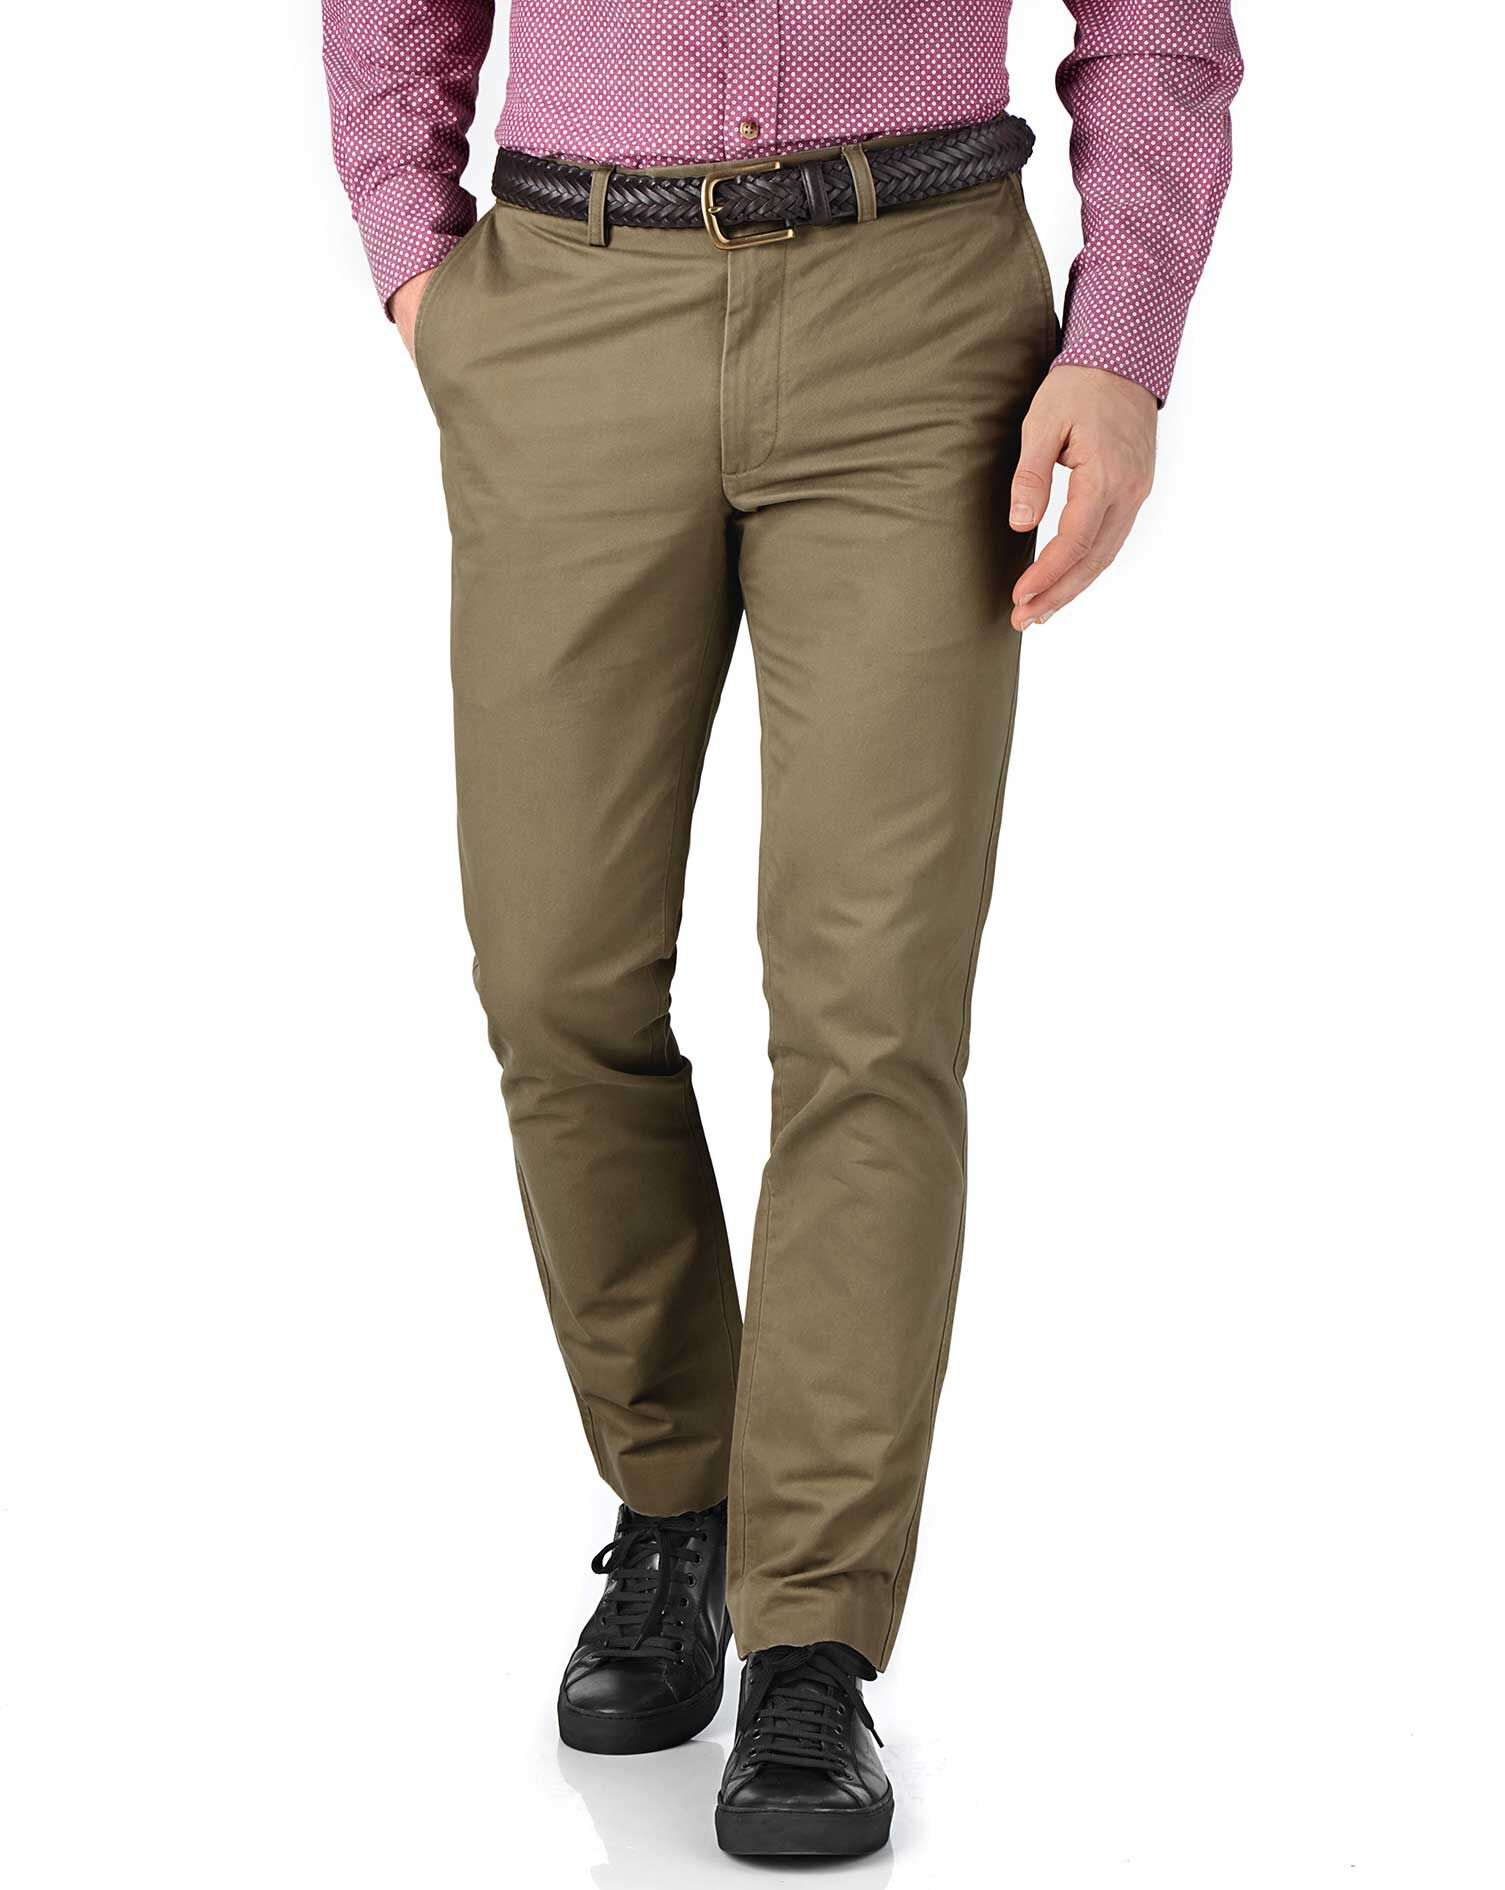 Beige Extra Slim Fit Flat Front Cotton Chino Trousers Size W38 L38 by Charles Tyrwhitt